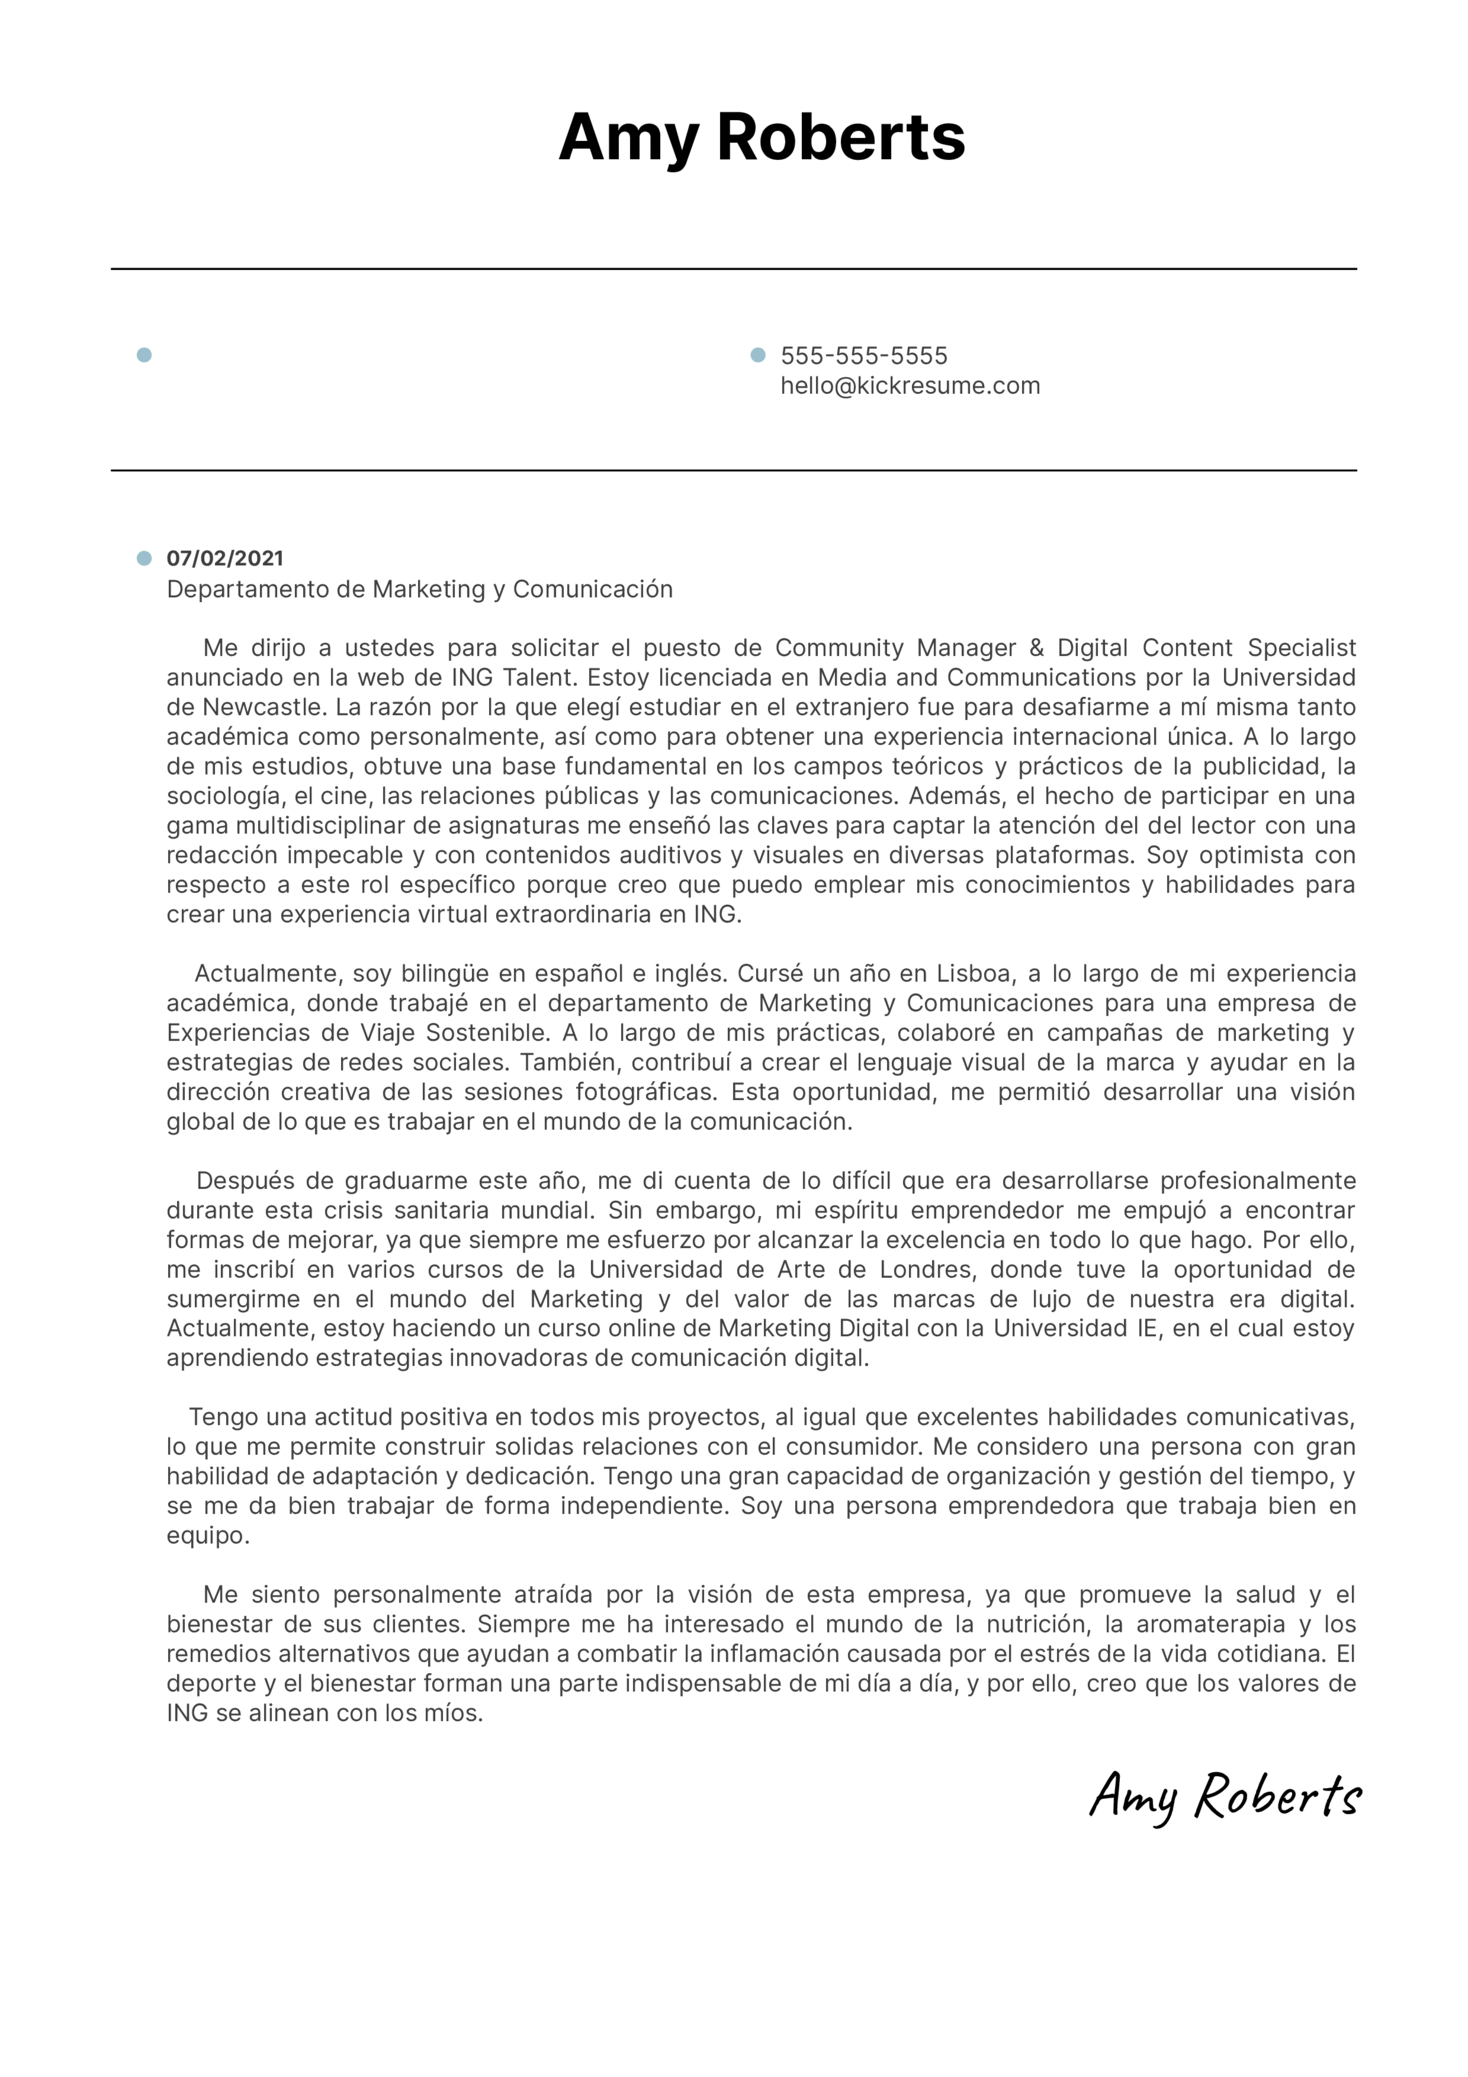 Analyst at ING Cover Letter Sample [ES]